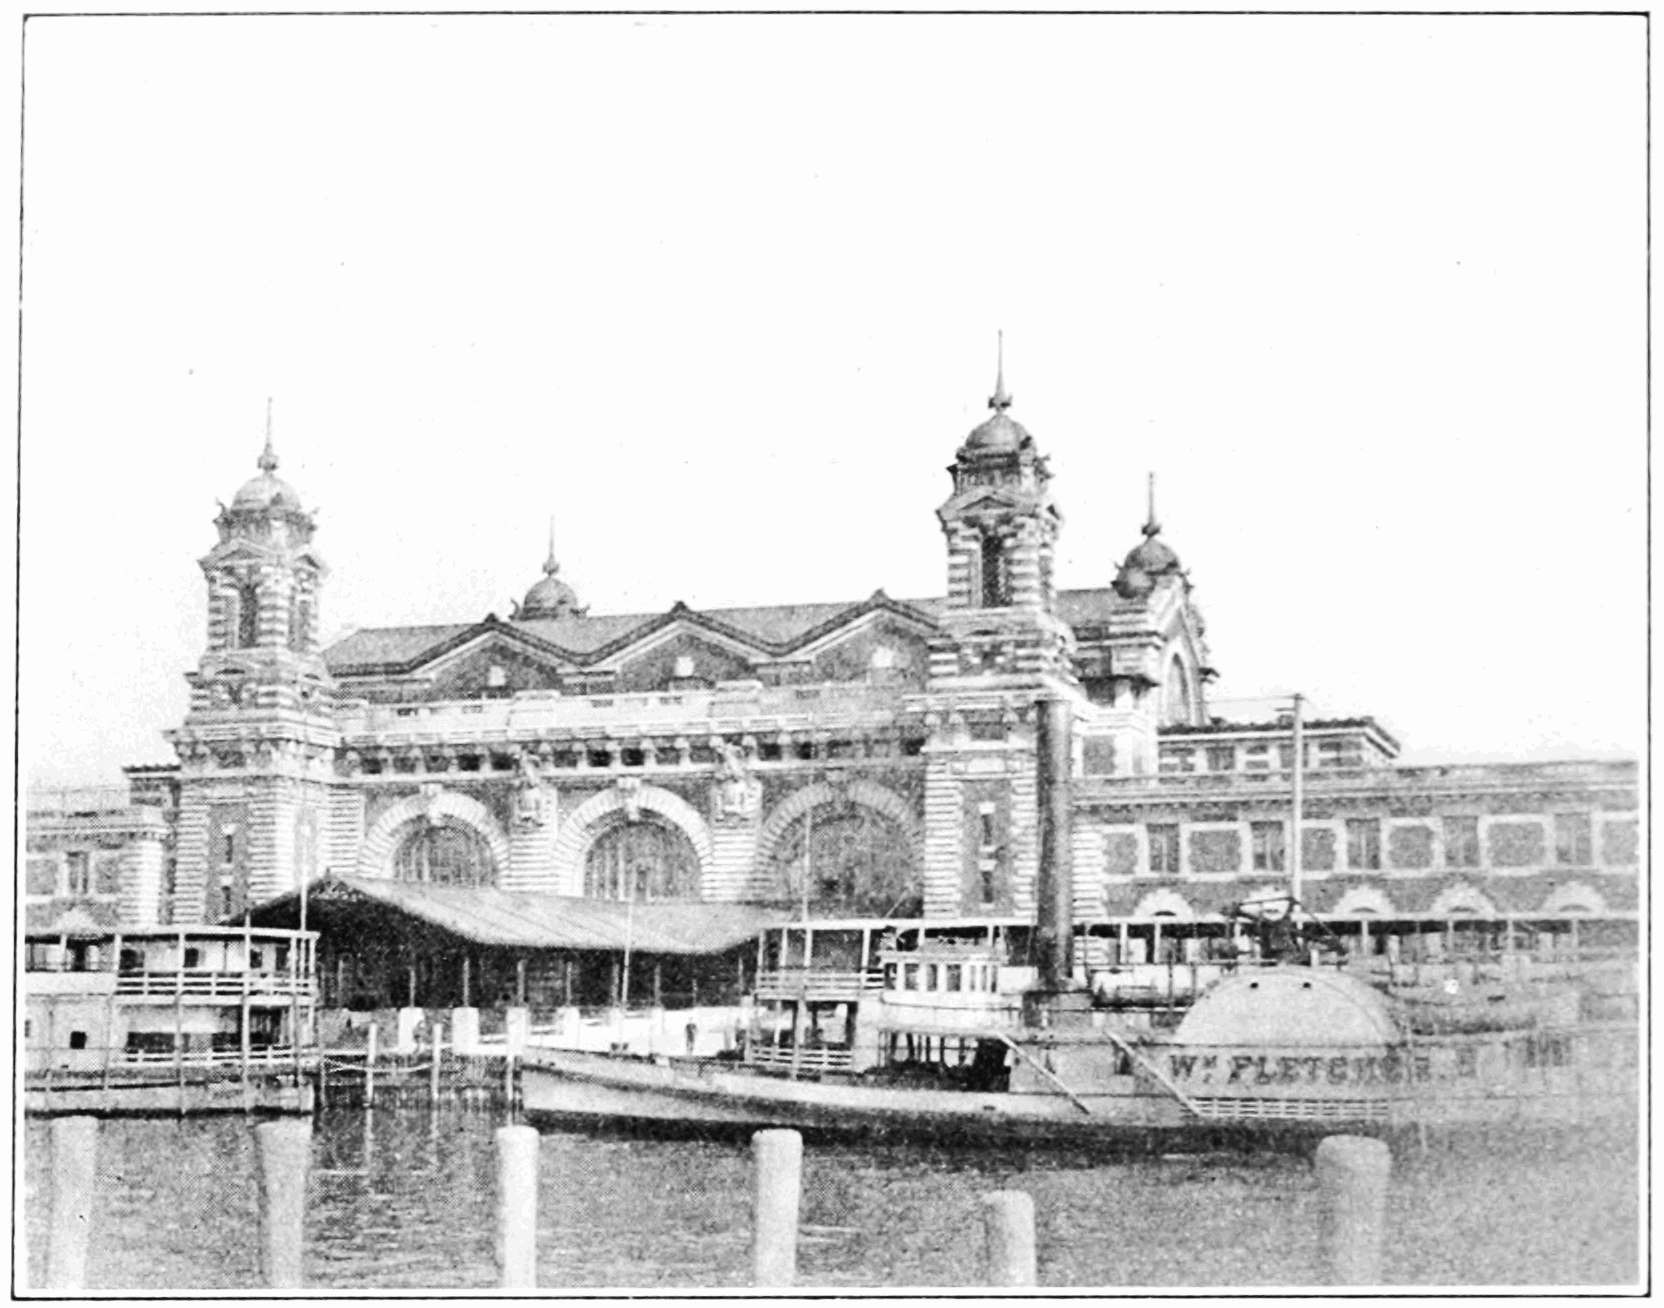 PSM V83 D318 Ellis island boat launch station.png